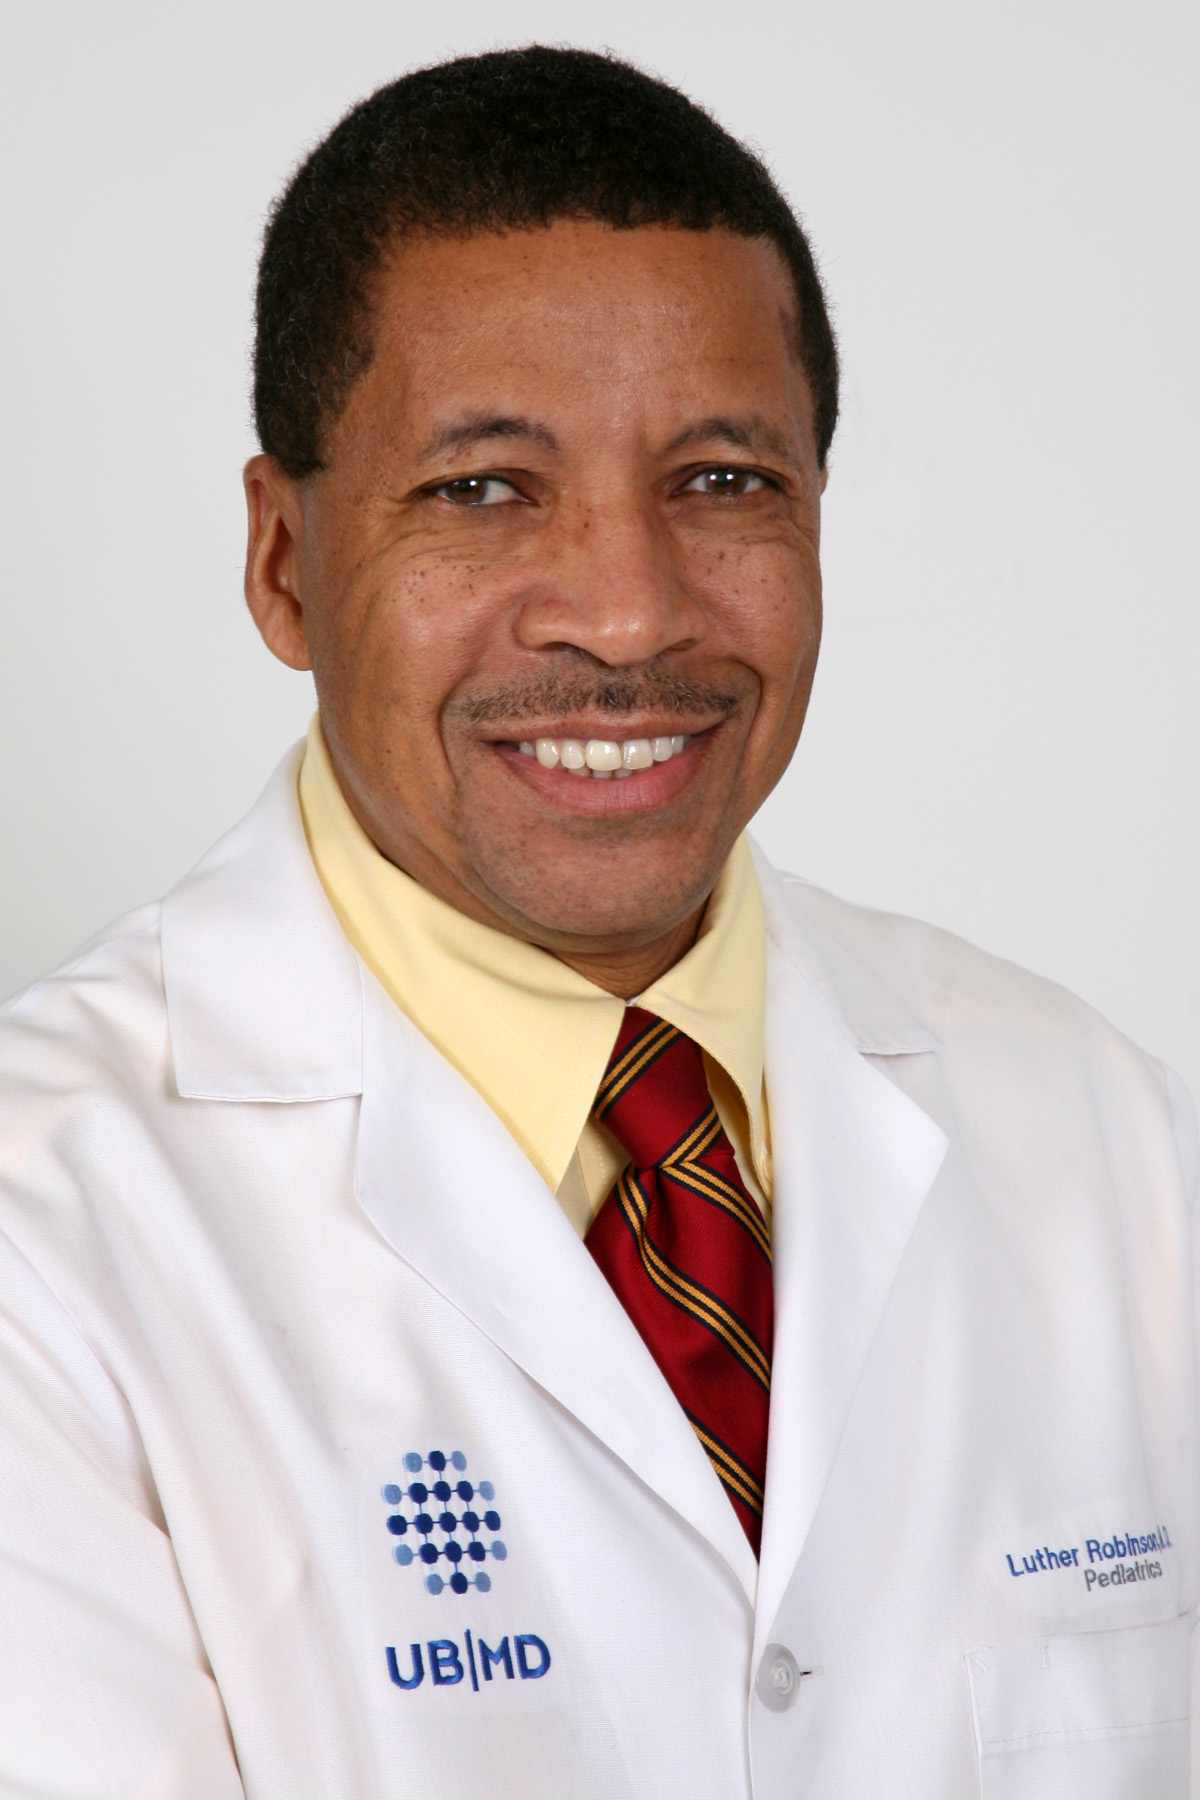 Luther K Robinson, MD